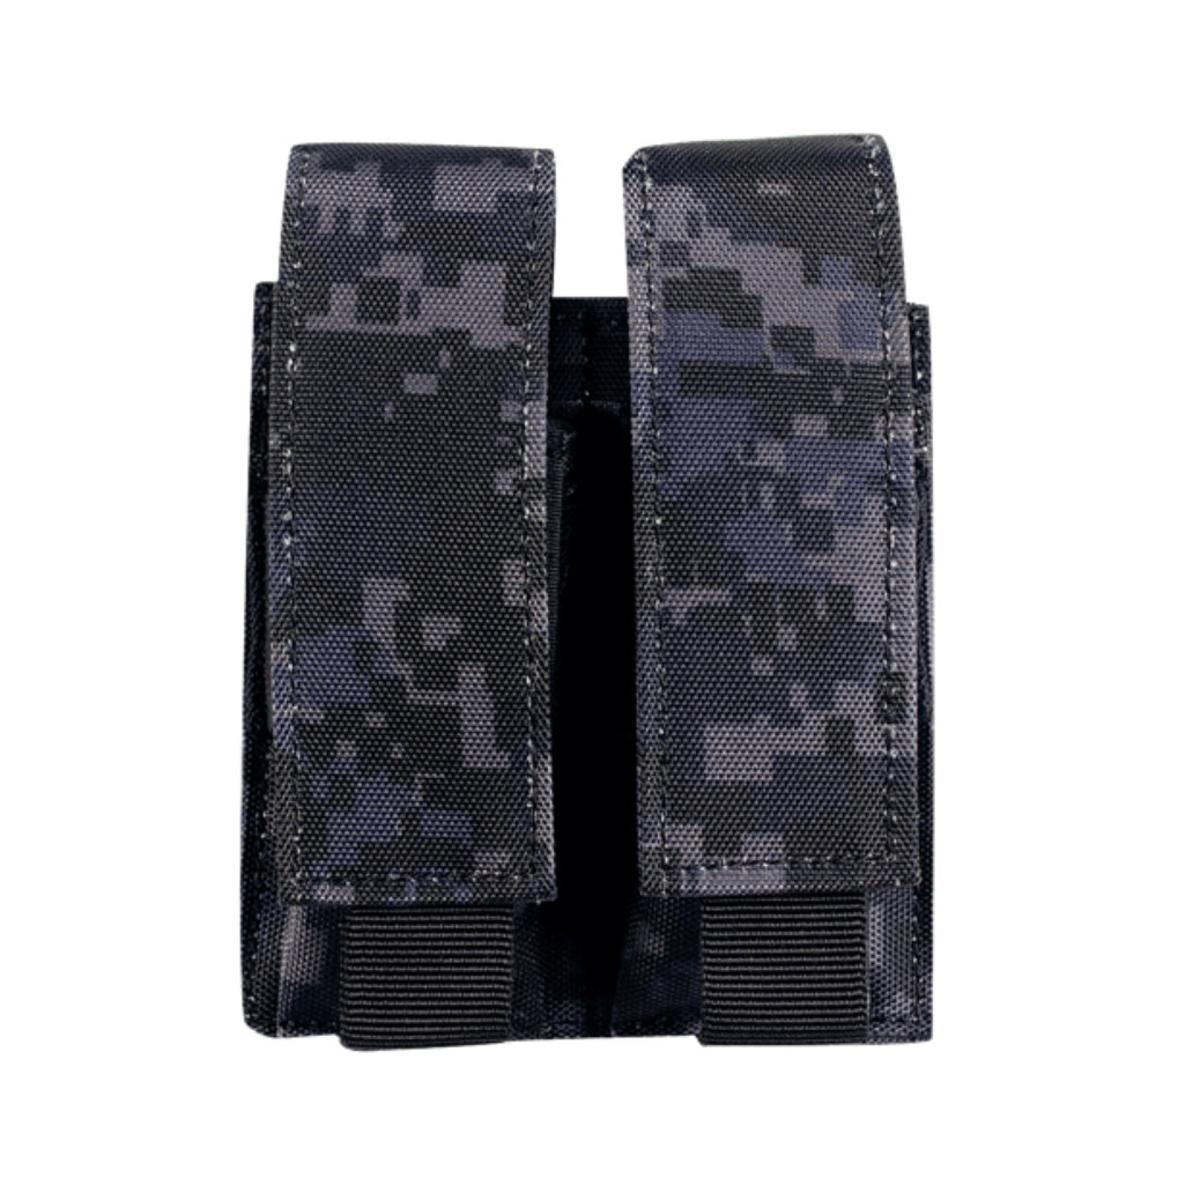 Voodoo Tactical Black Double Pistol Magazine Pouch Bag MOLLE PALS NEW NWT